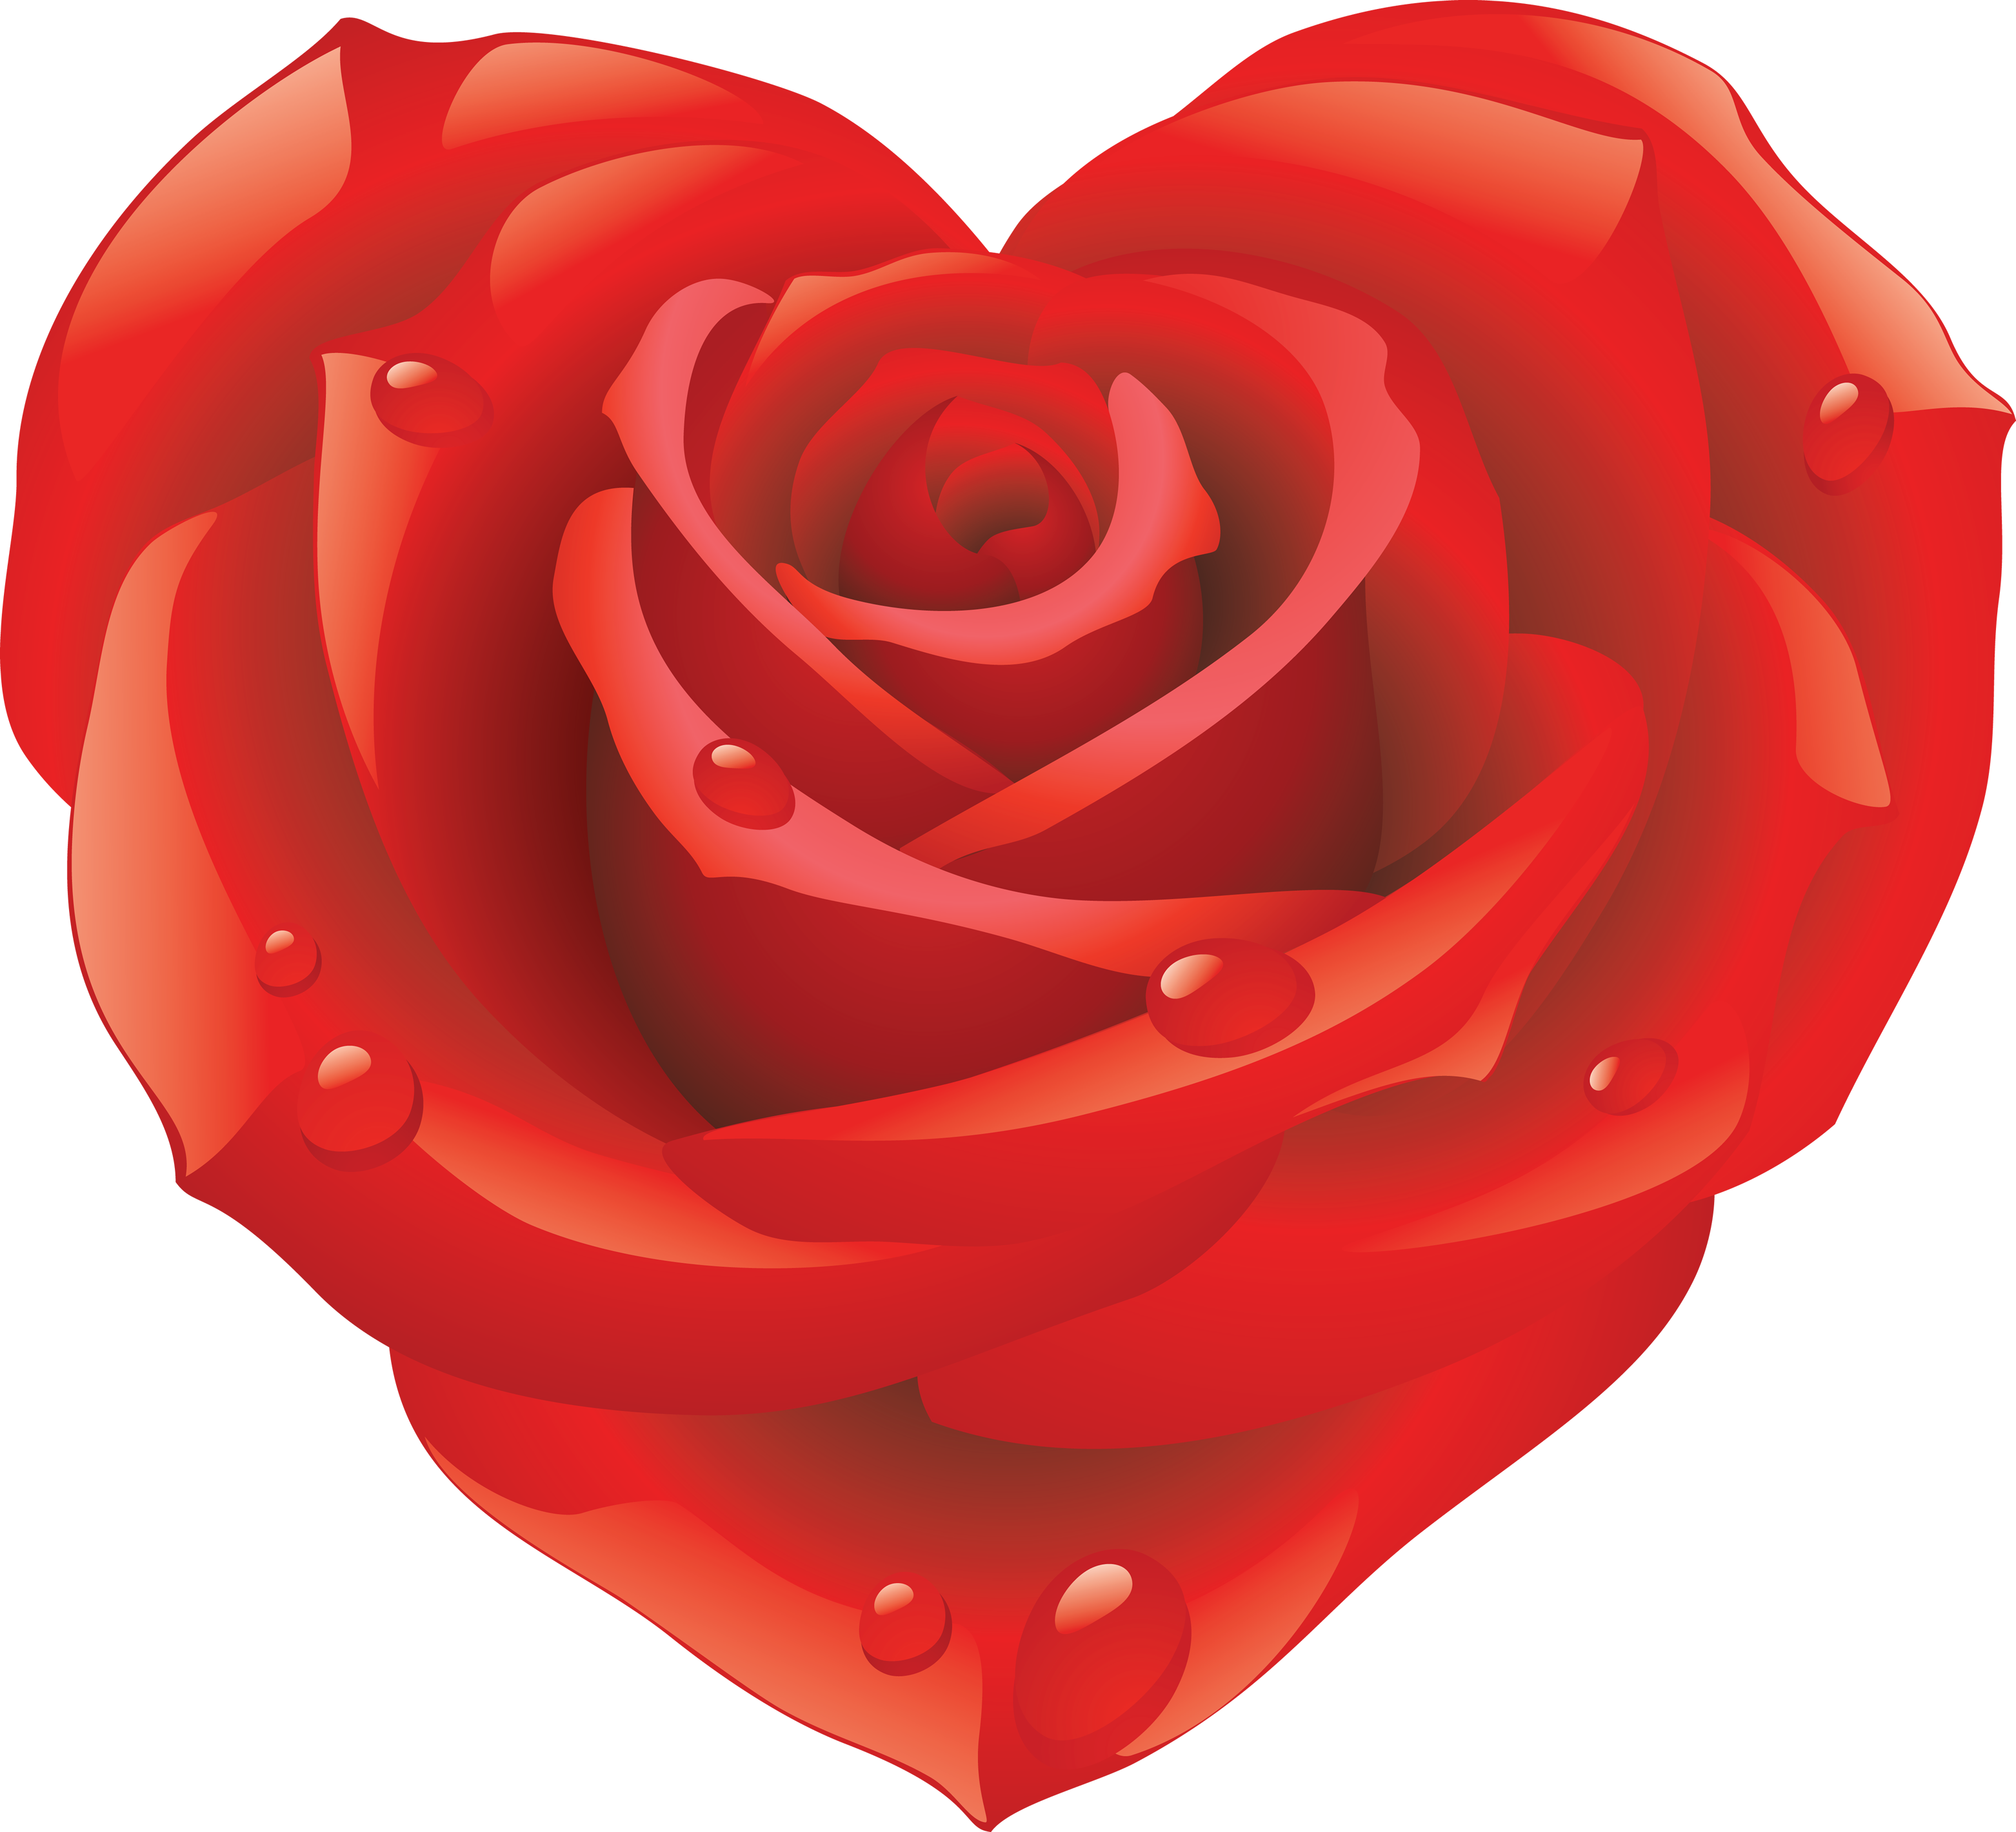 Rose image qygjxz . Hearts clipart pulse